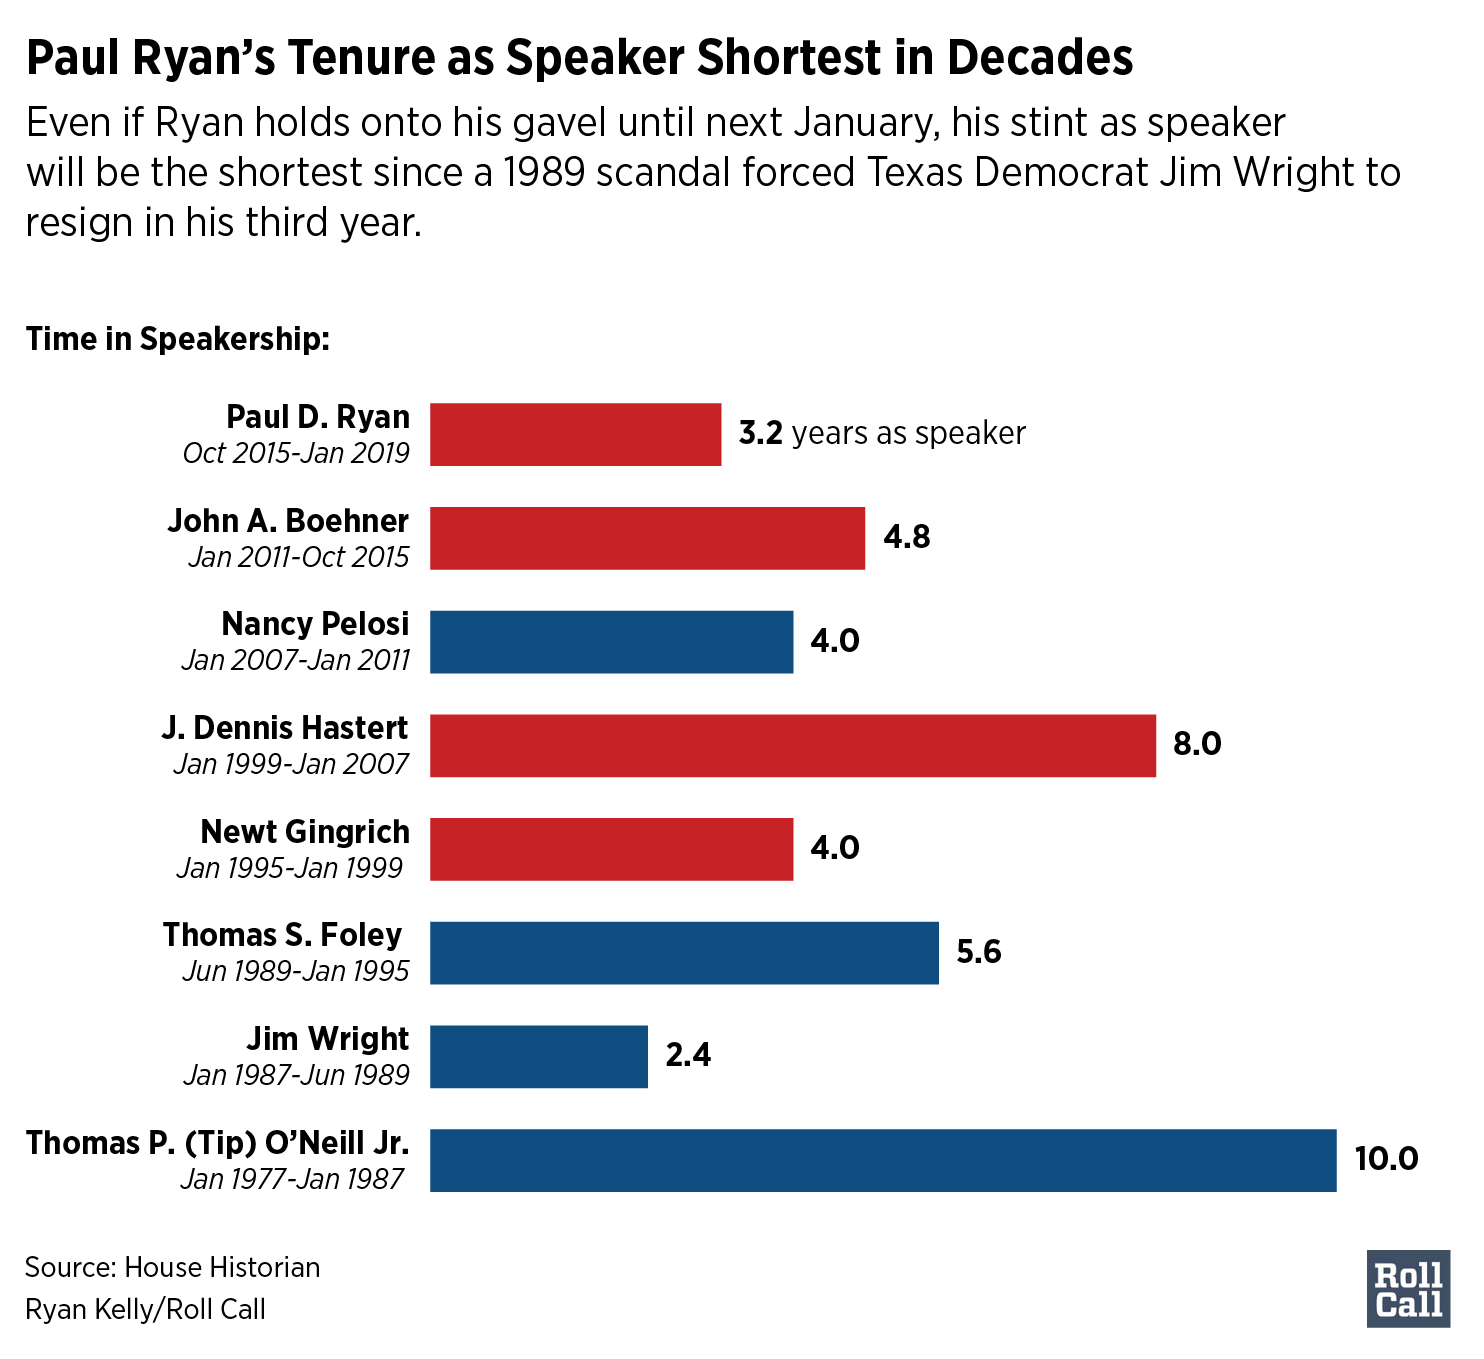 12Ryan-speakertenure2_Roll Call online